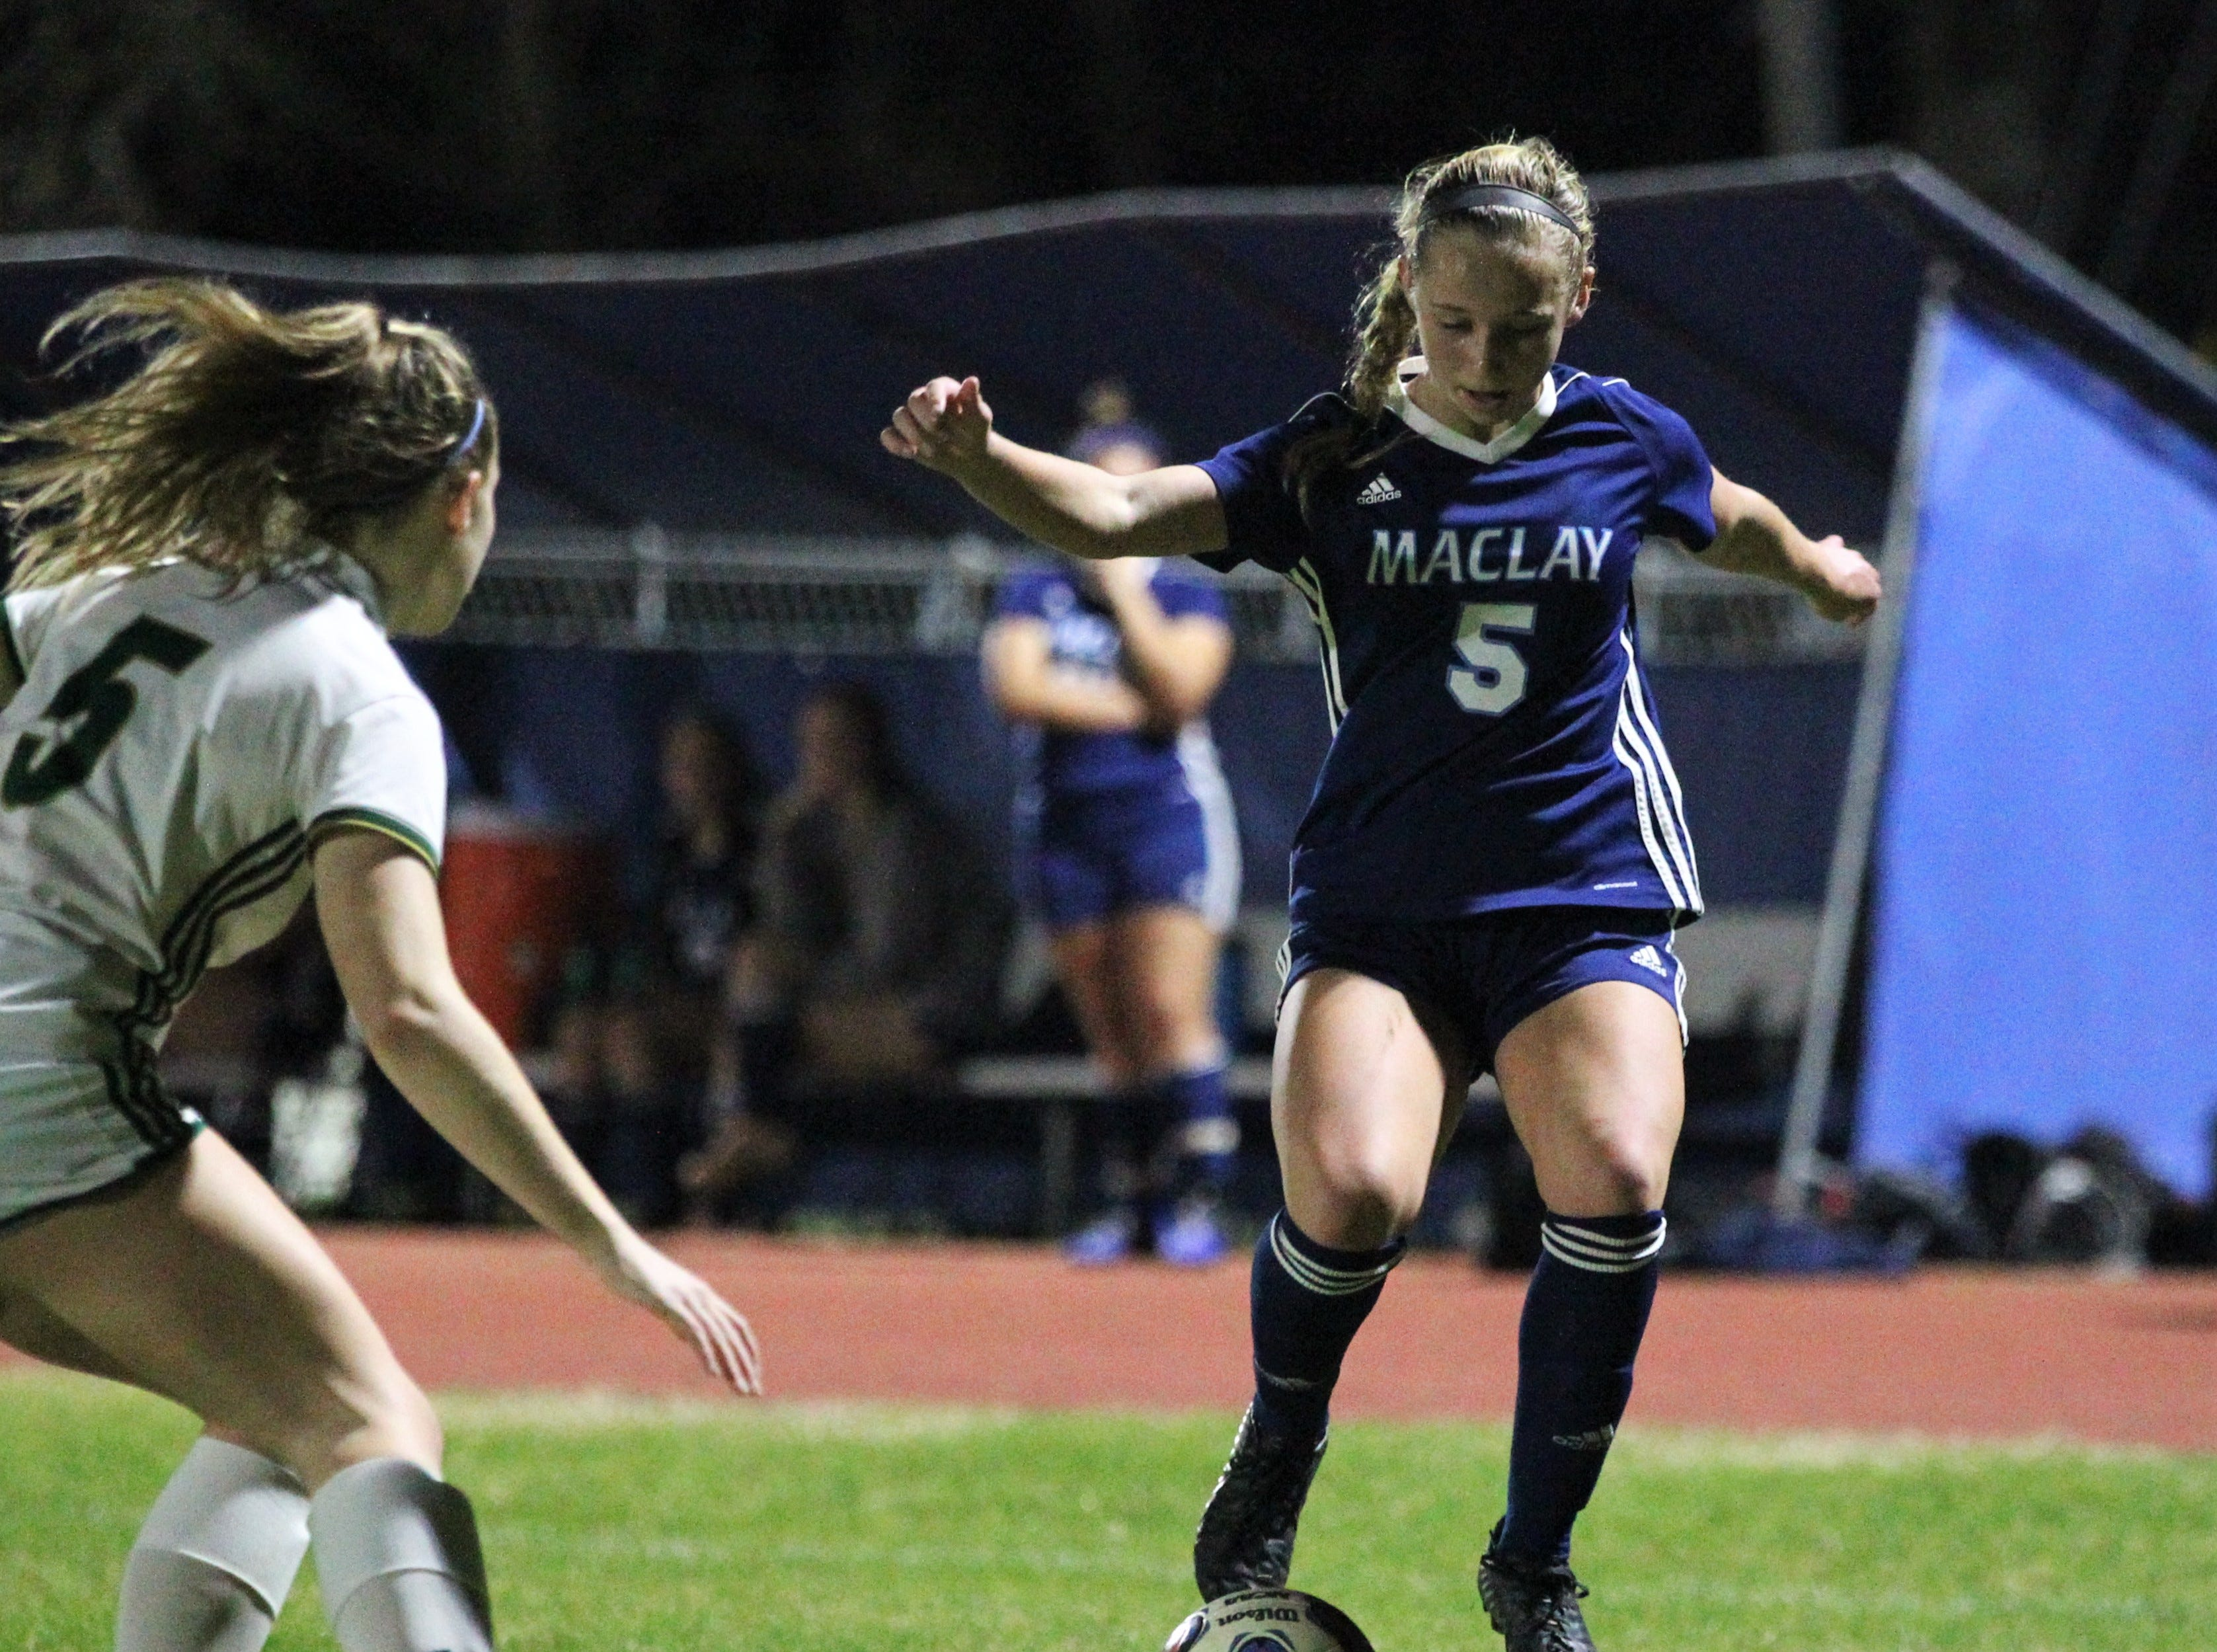 Maclay's Katelyn Dessi stops a ball on her dribble as Maclay's girls soccer team beat St. Joseph Academy 4-0 in a Region 1-1A quarterfinal on Jan. 5, 2019.